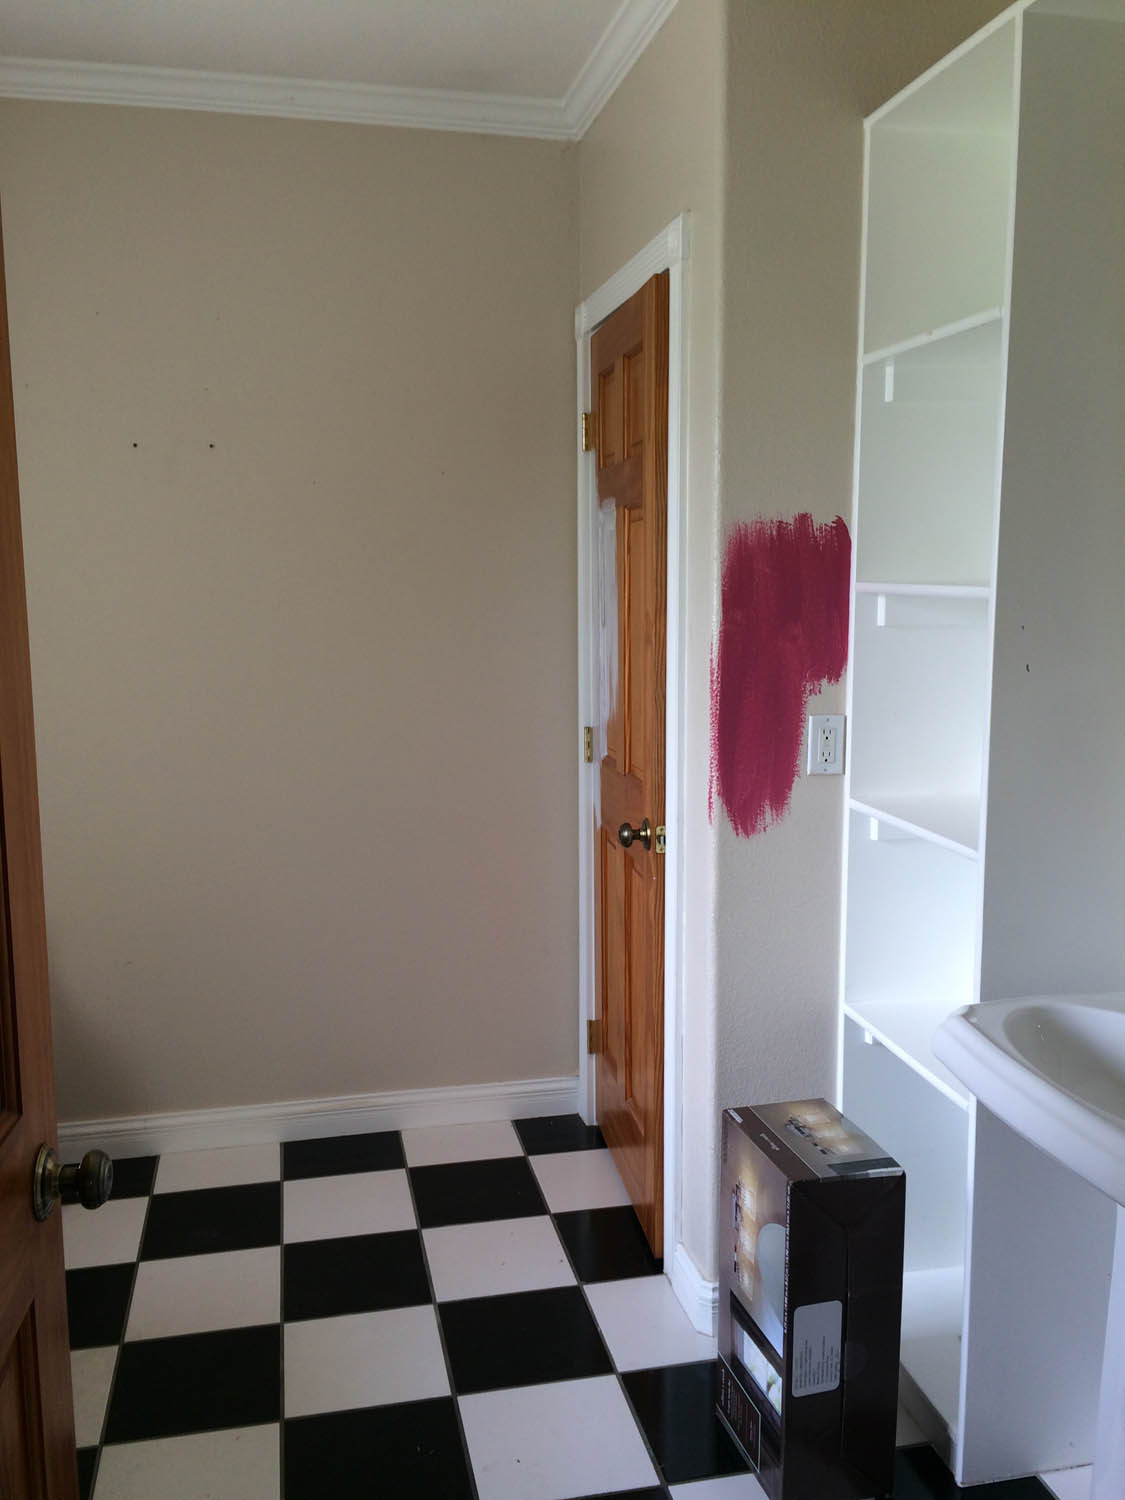 Curtice Cottage master bathroom before wallpaper and trying to decide on paint color.